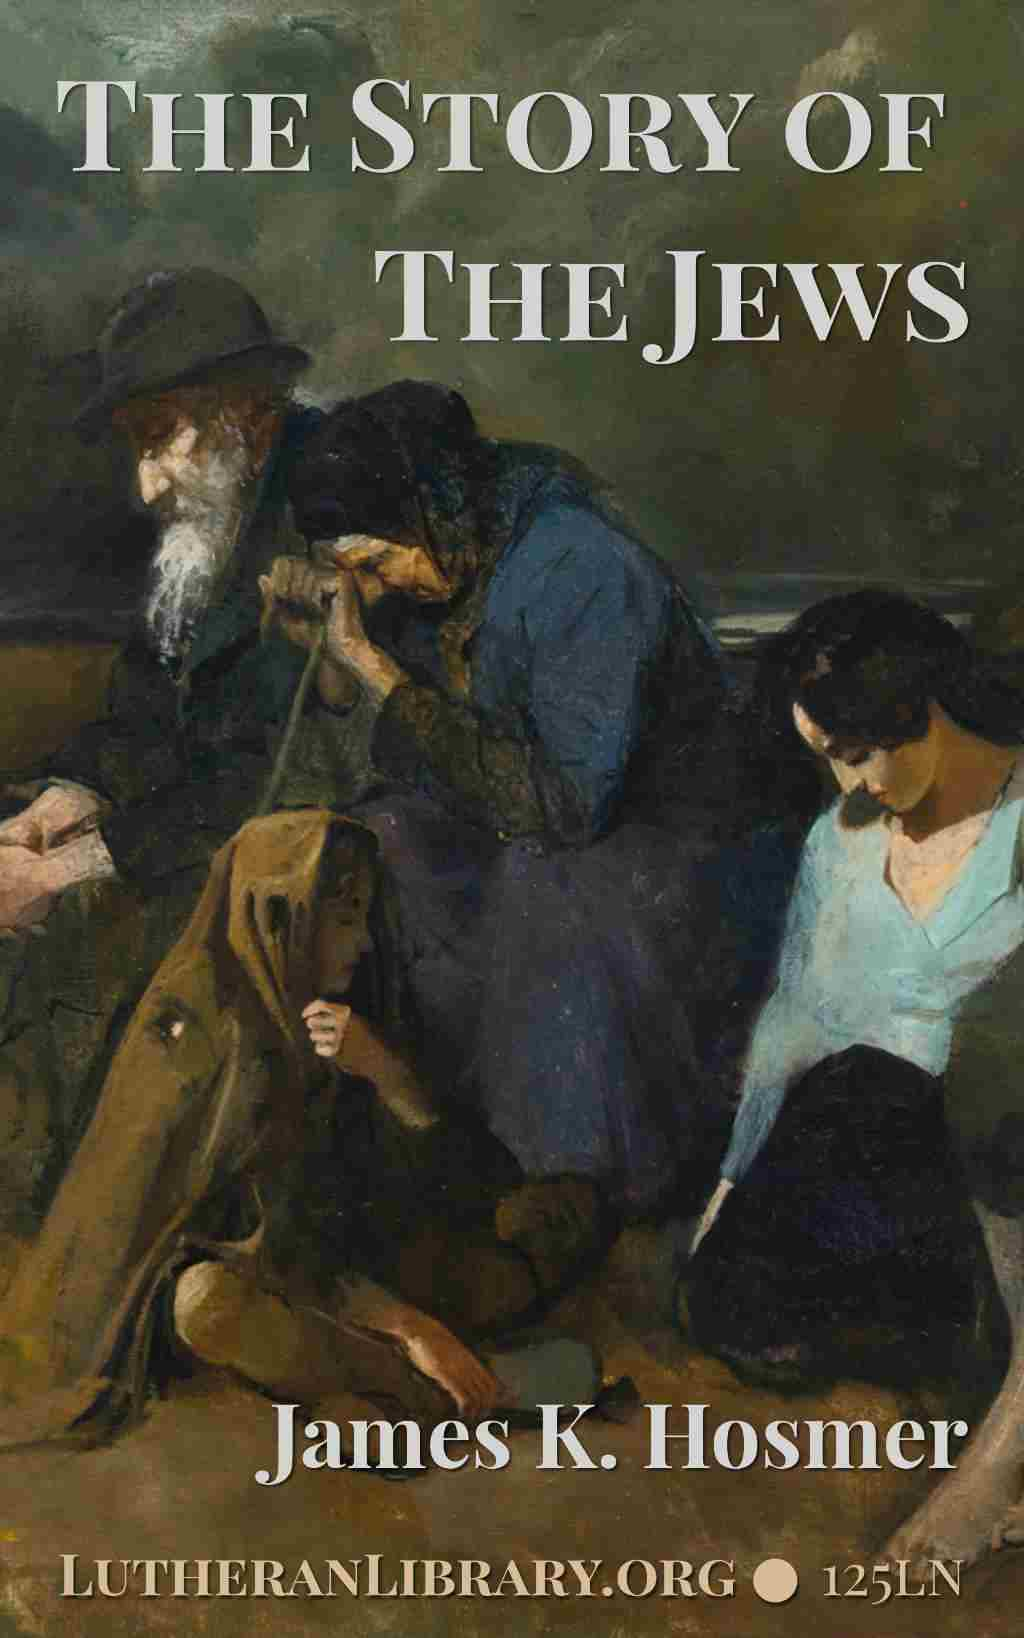 The Story of the Jews by James K. Hosmer